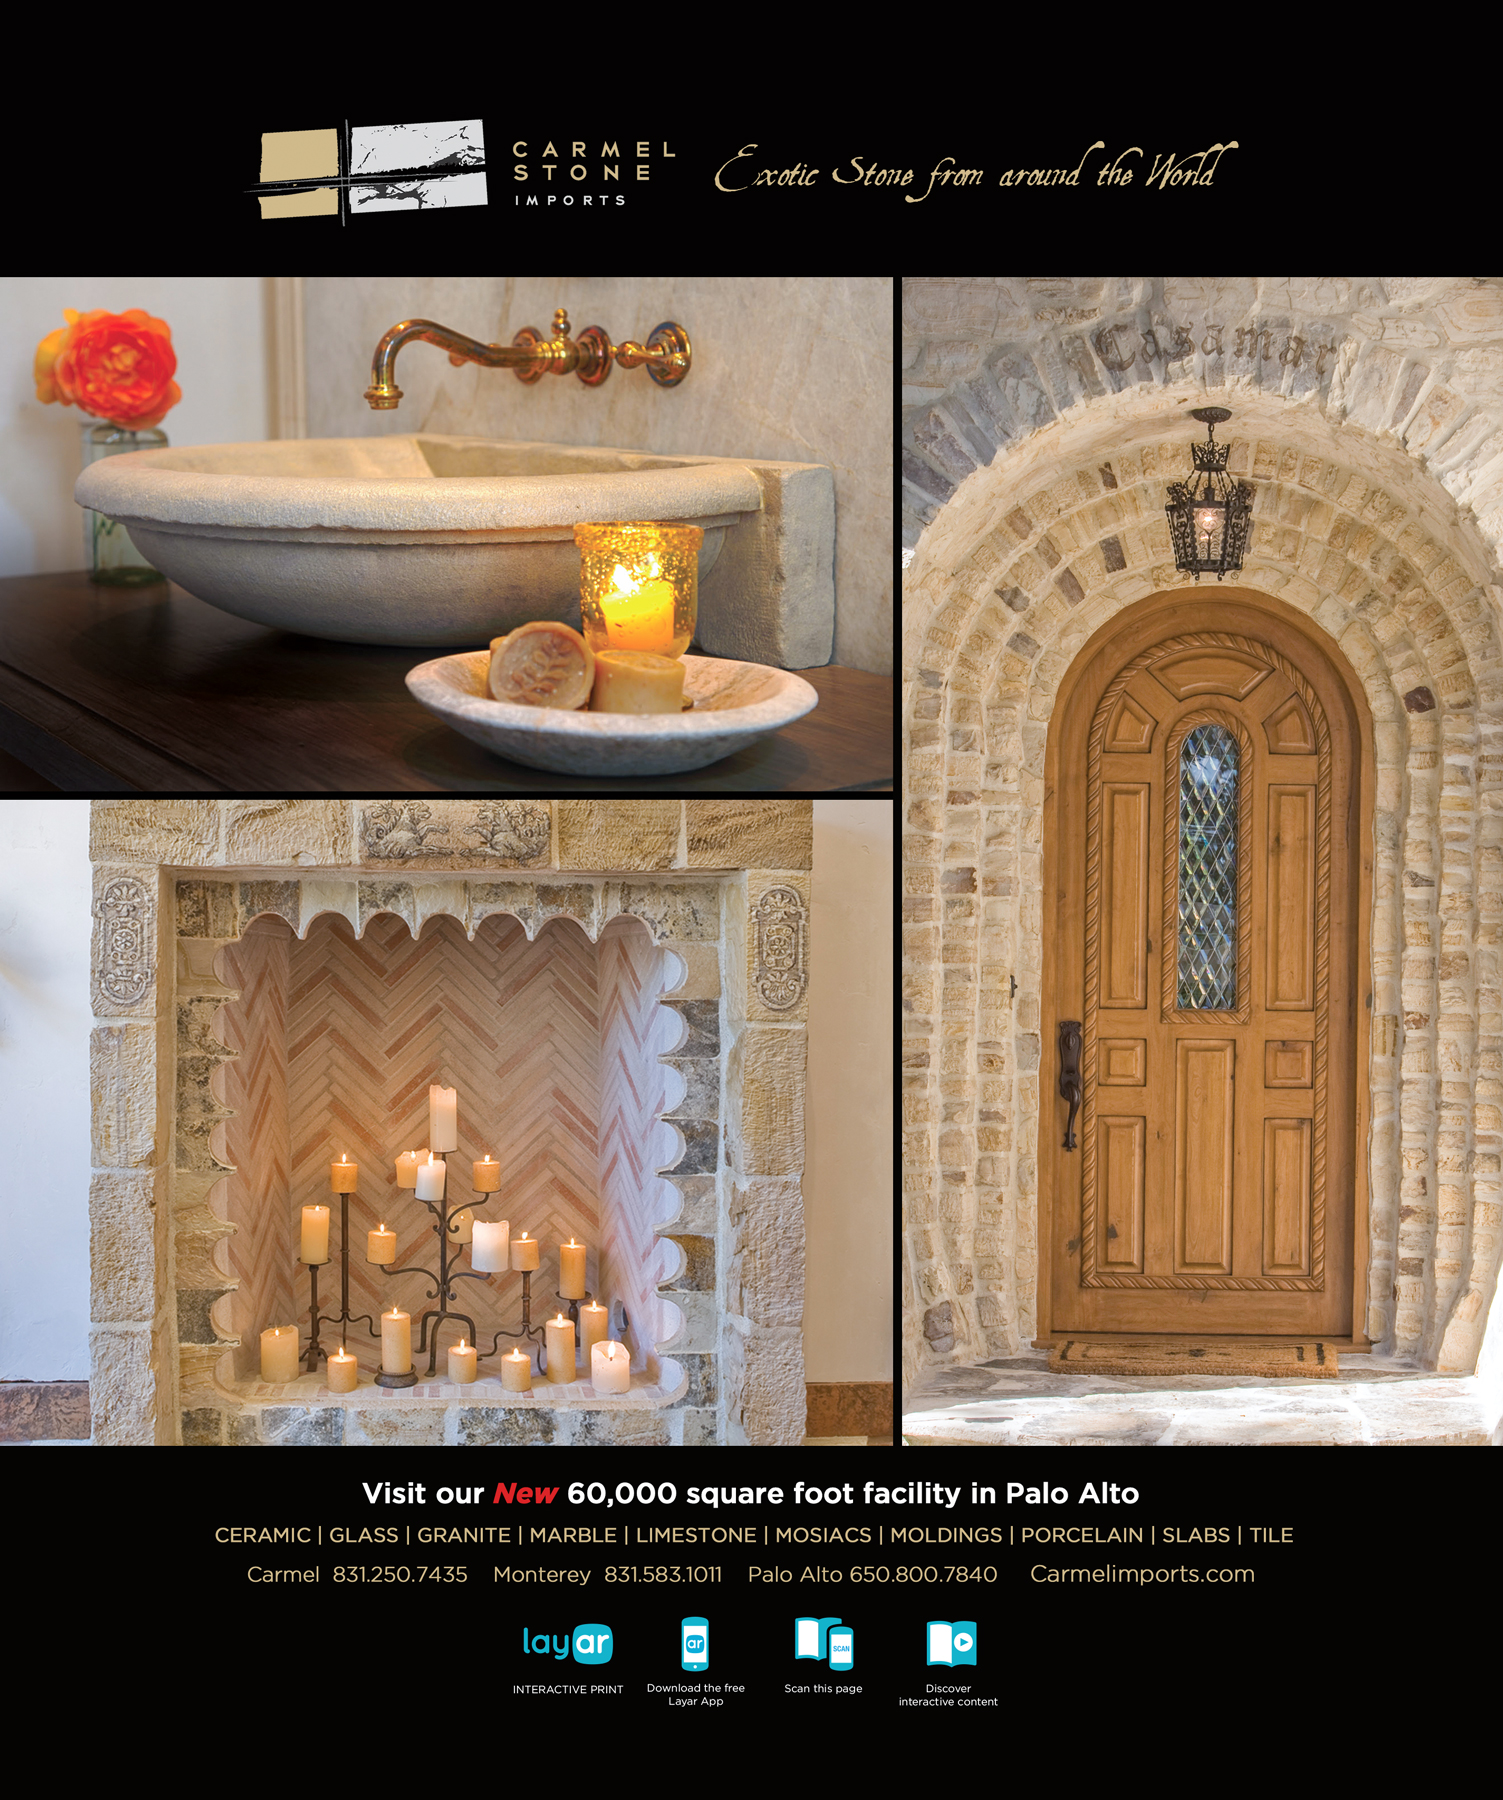 Carmel-Stone-Luxe-ad-7_30